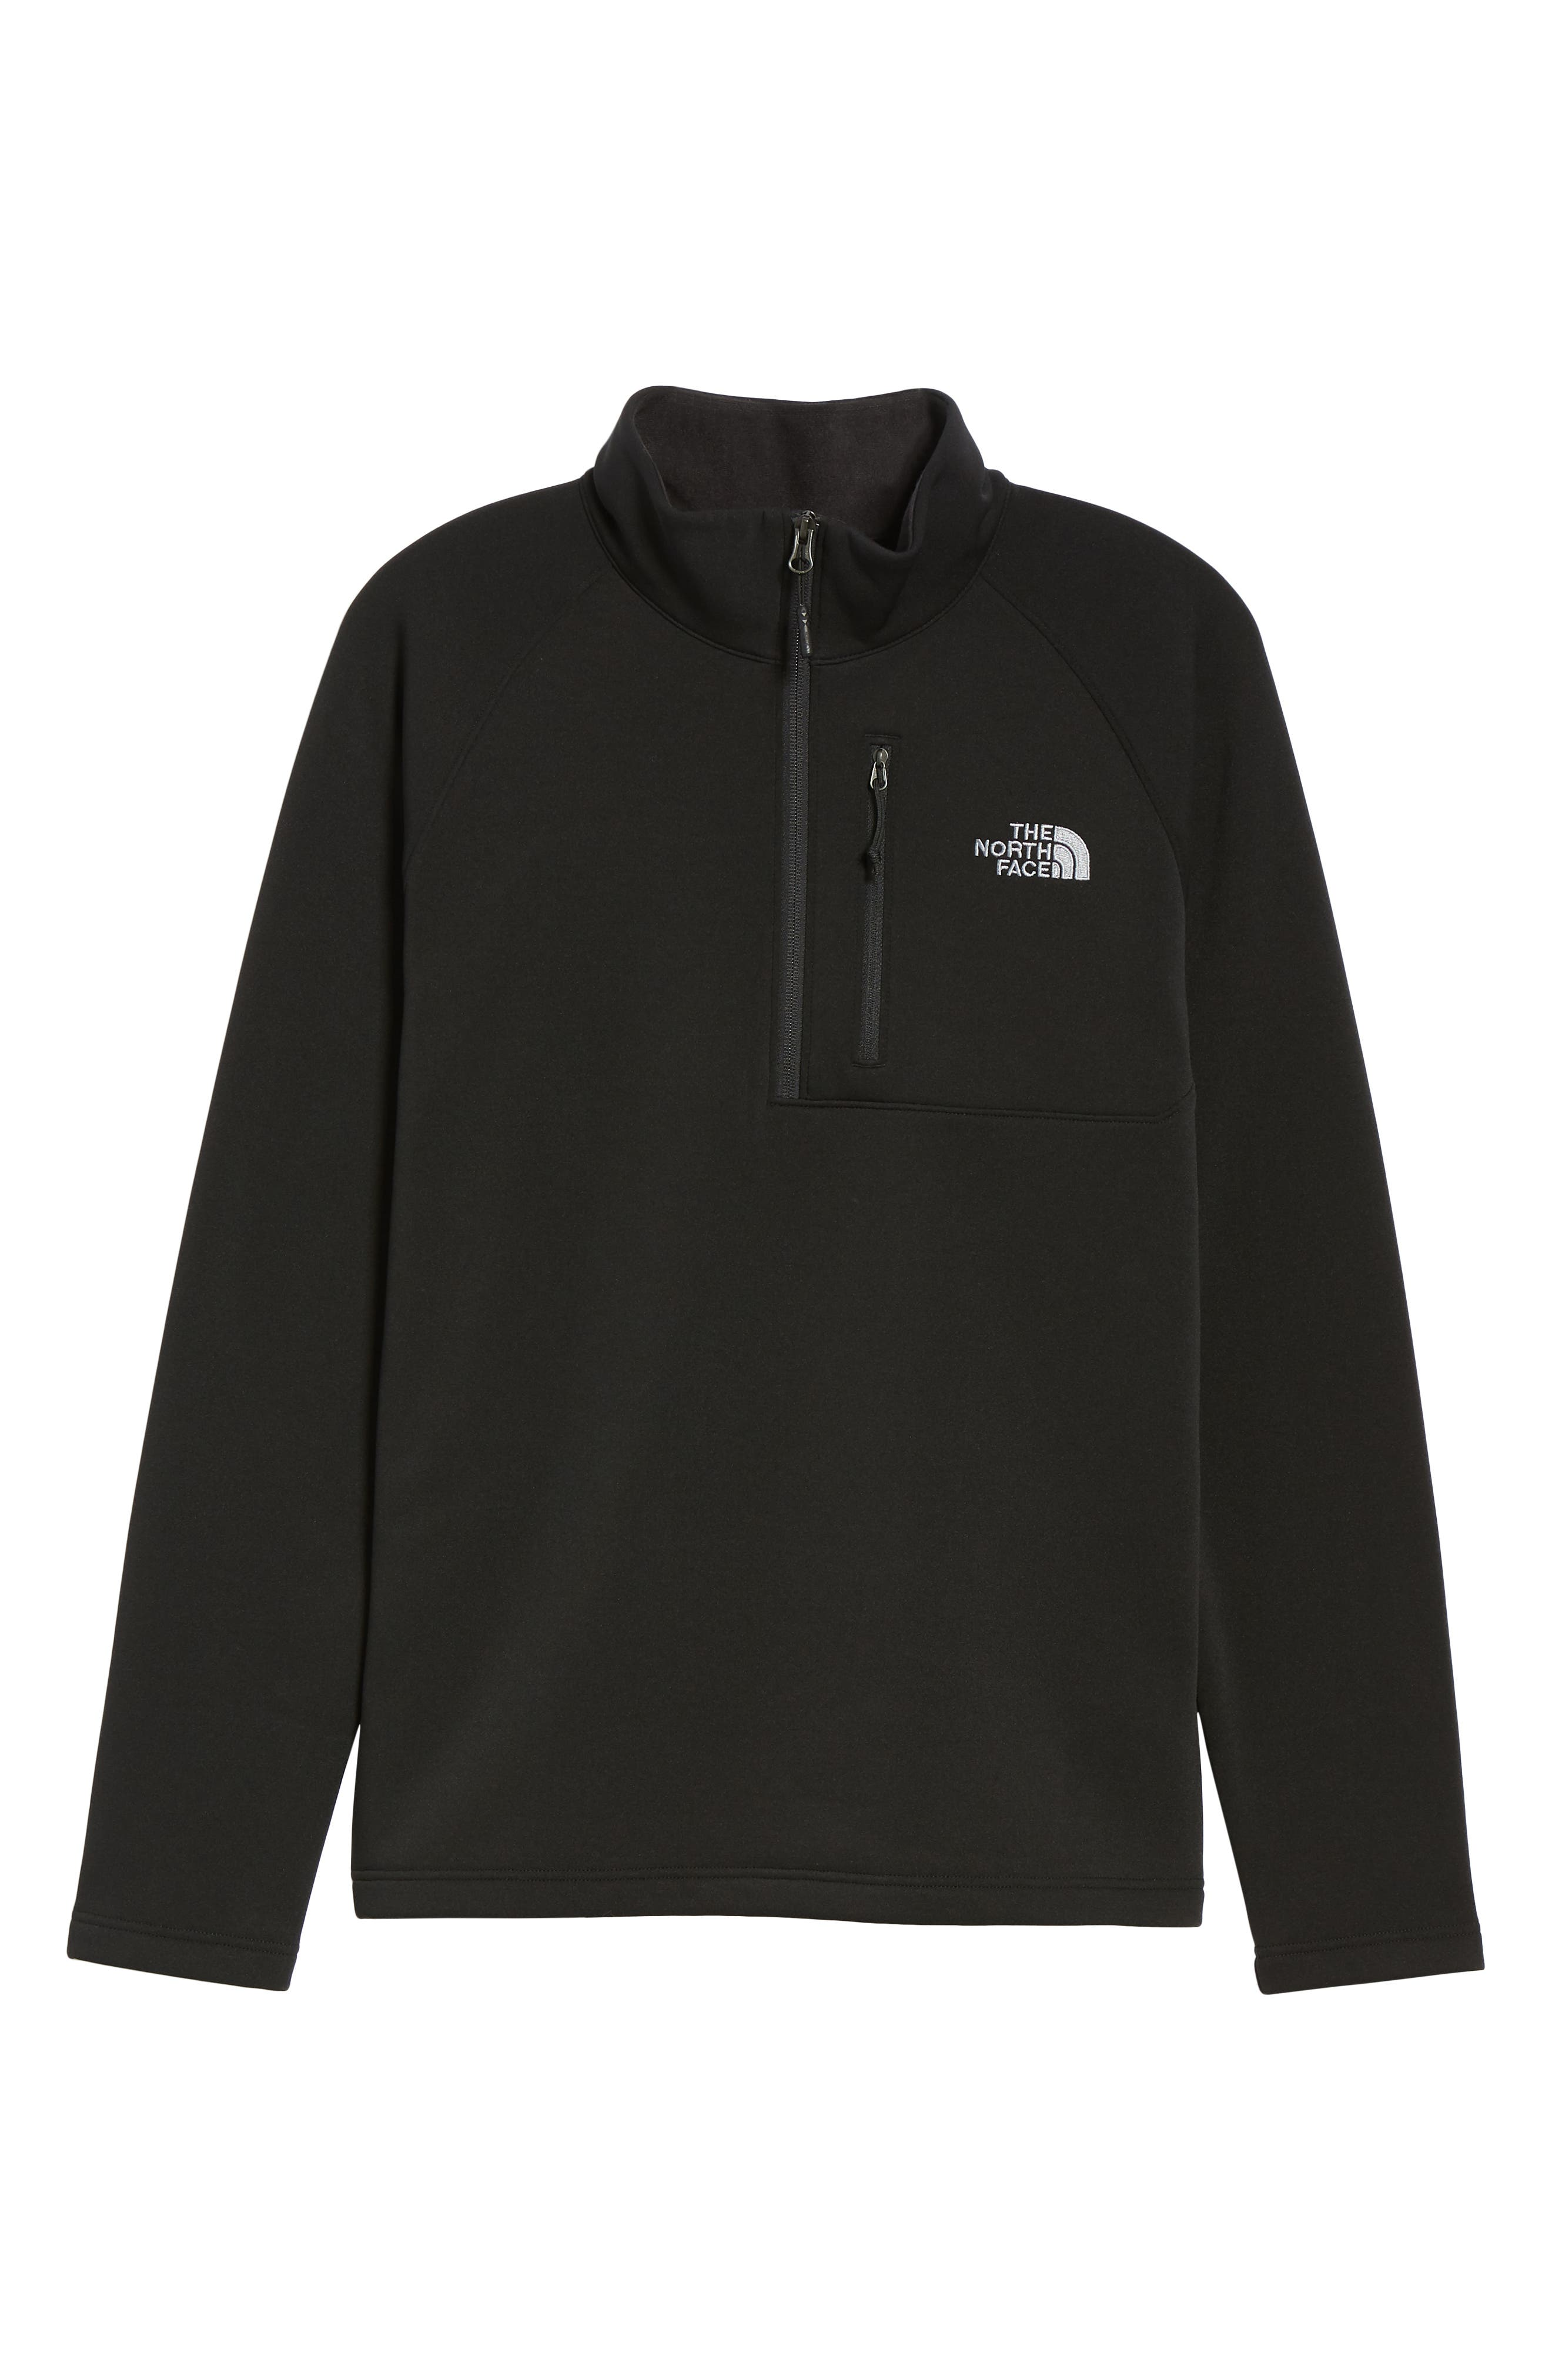 THE NORTH FACE,                             Tenacious Quarter Zip Pullover,                             Alternate thumbnail 6, color,                             001